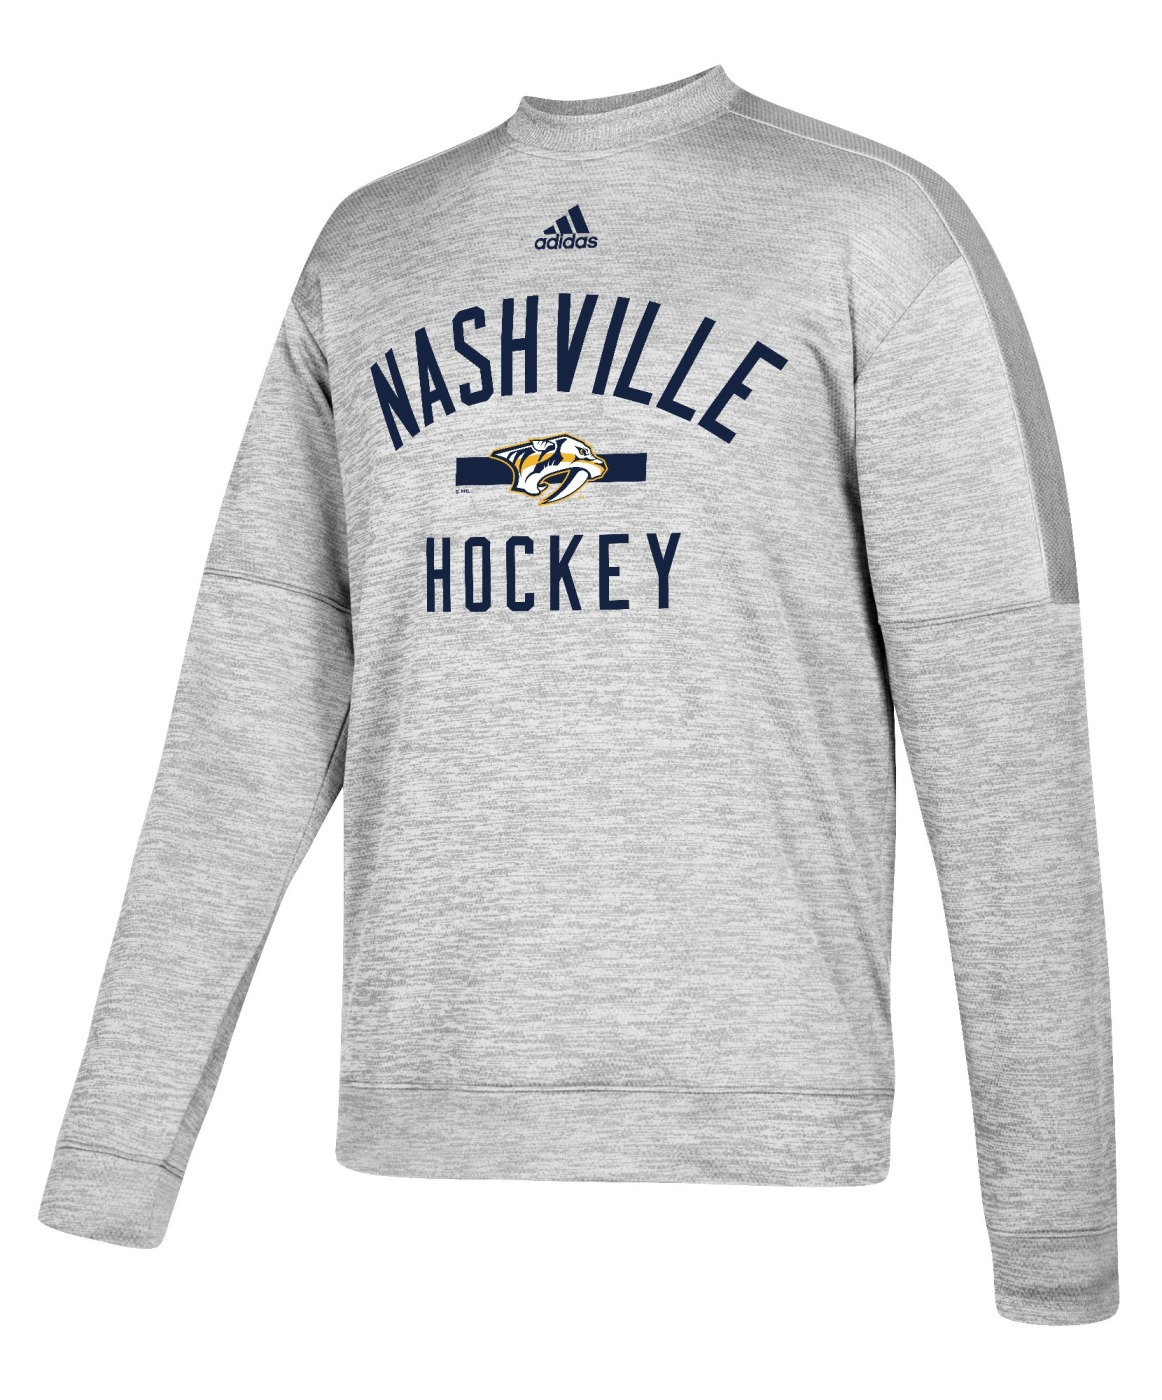 "Nashville Predators Adidas NHL Men's ""Archer"" Crewneck Fleece Sweatshirt"